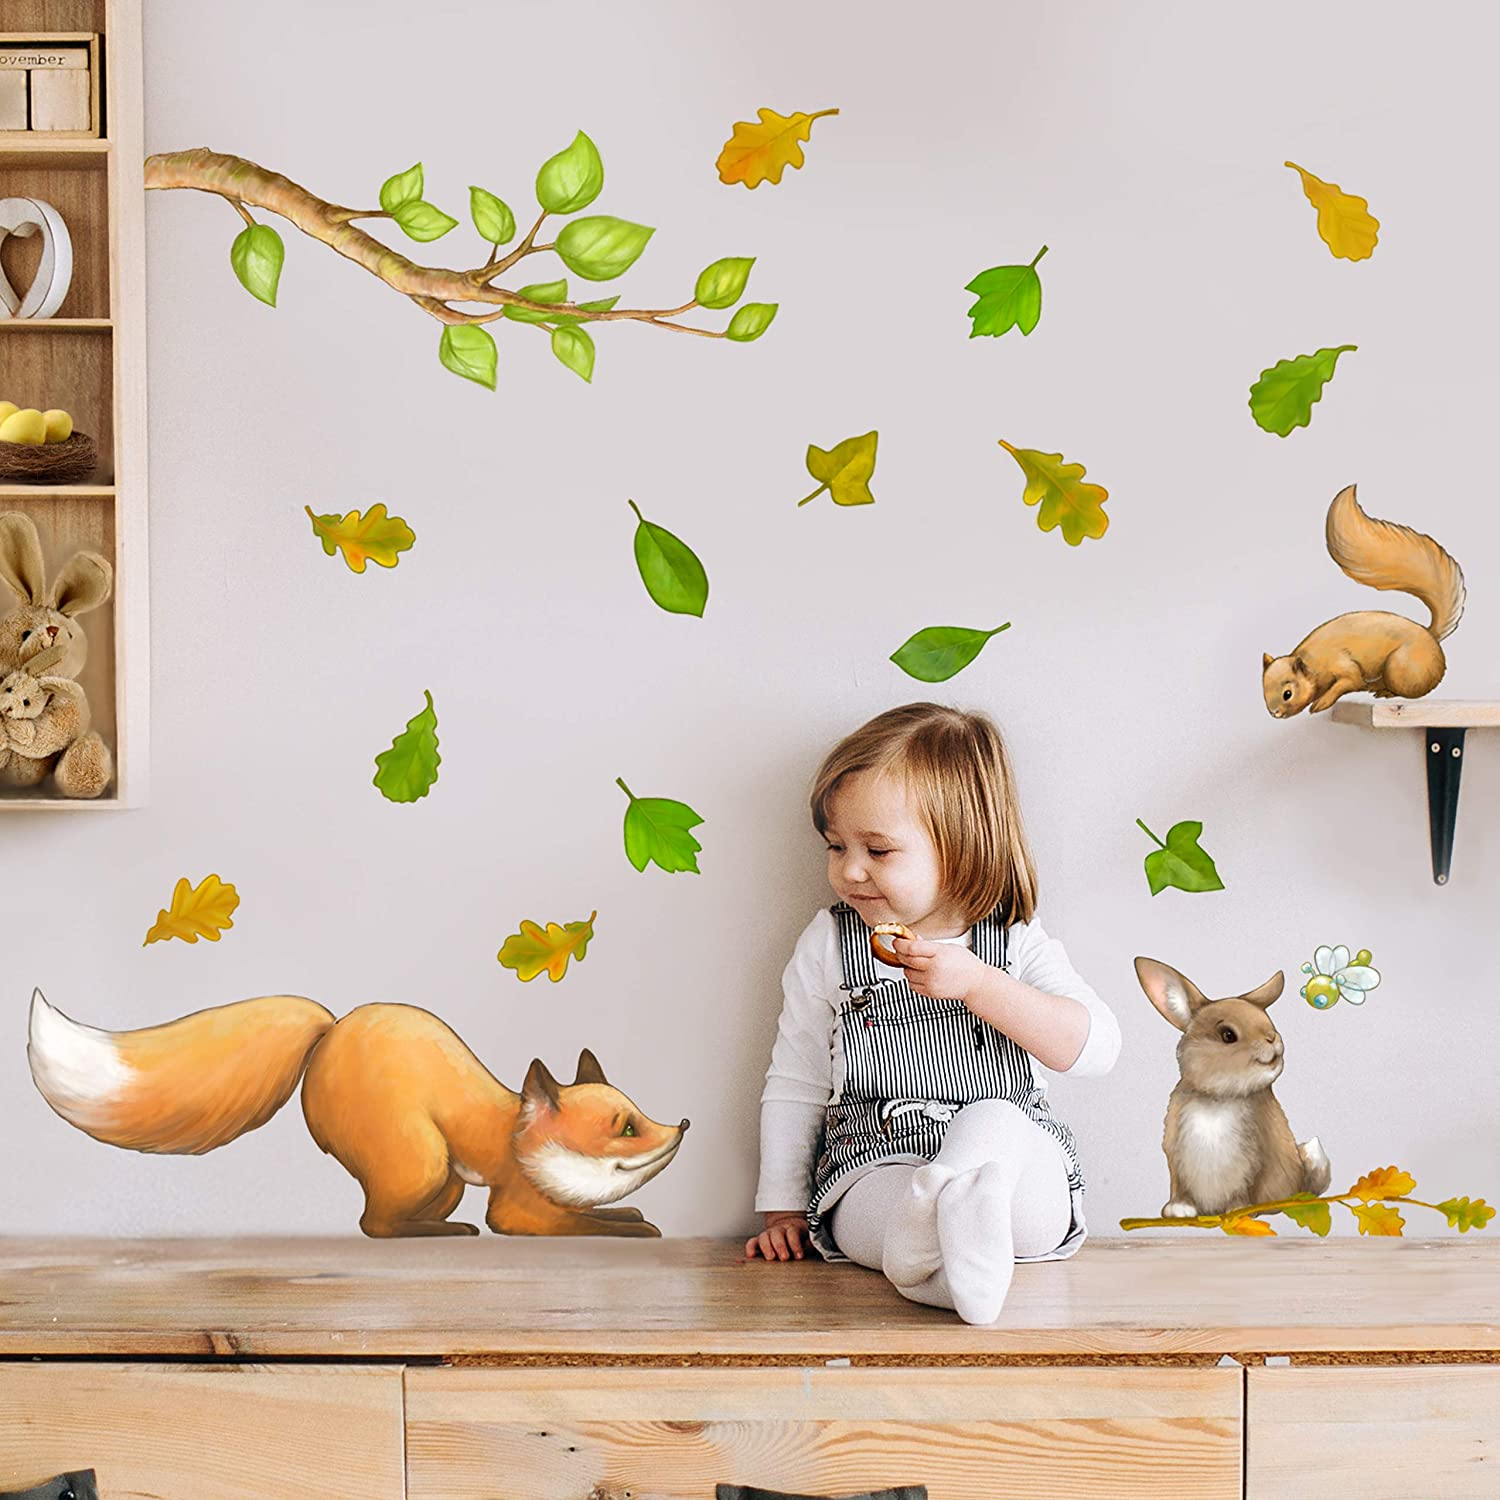 Woodland Animals Peel and Stick Wall Decals for Kids Room Decor. Forest Creatures Wall Stickers for Wall Decor. (Fox, Squirrel, Bunny)